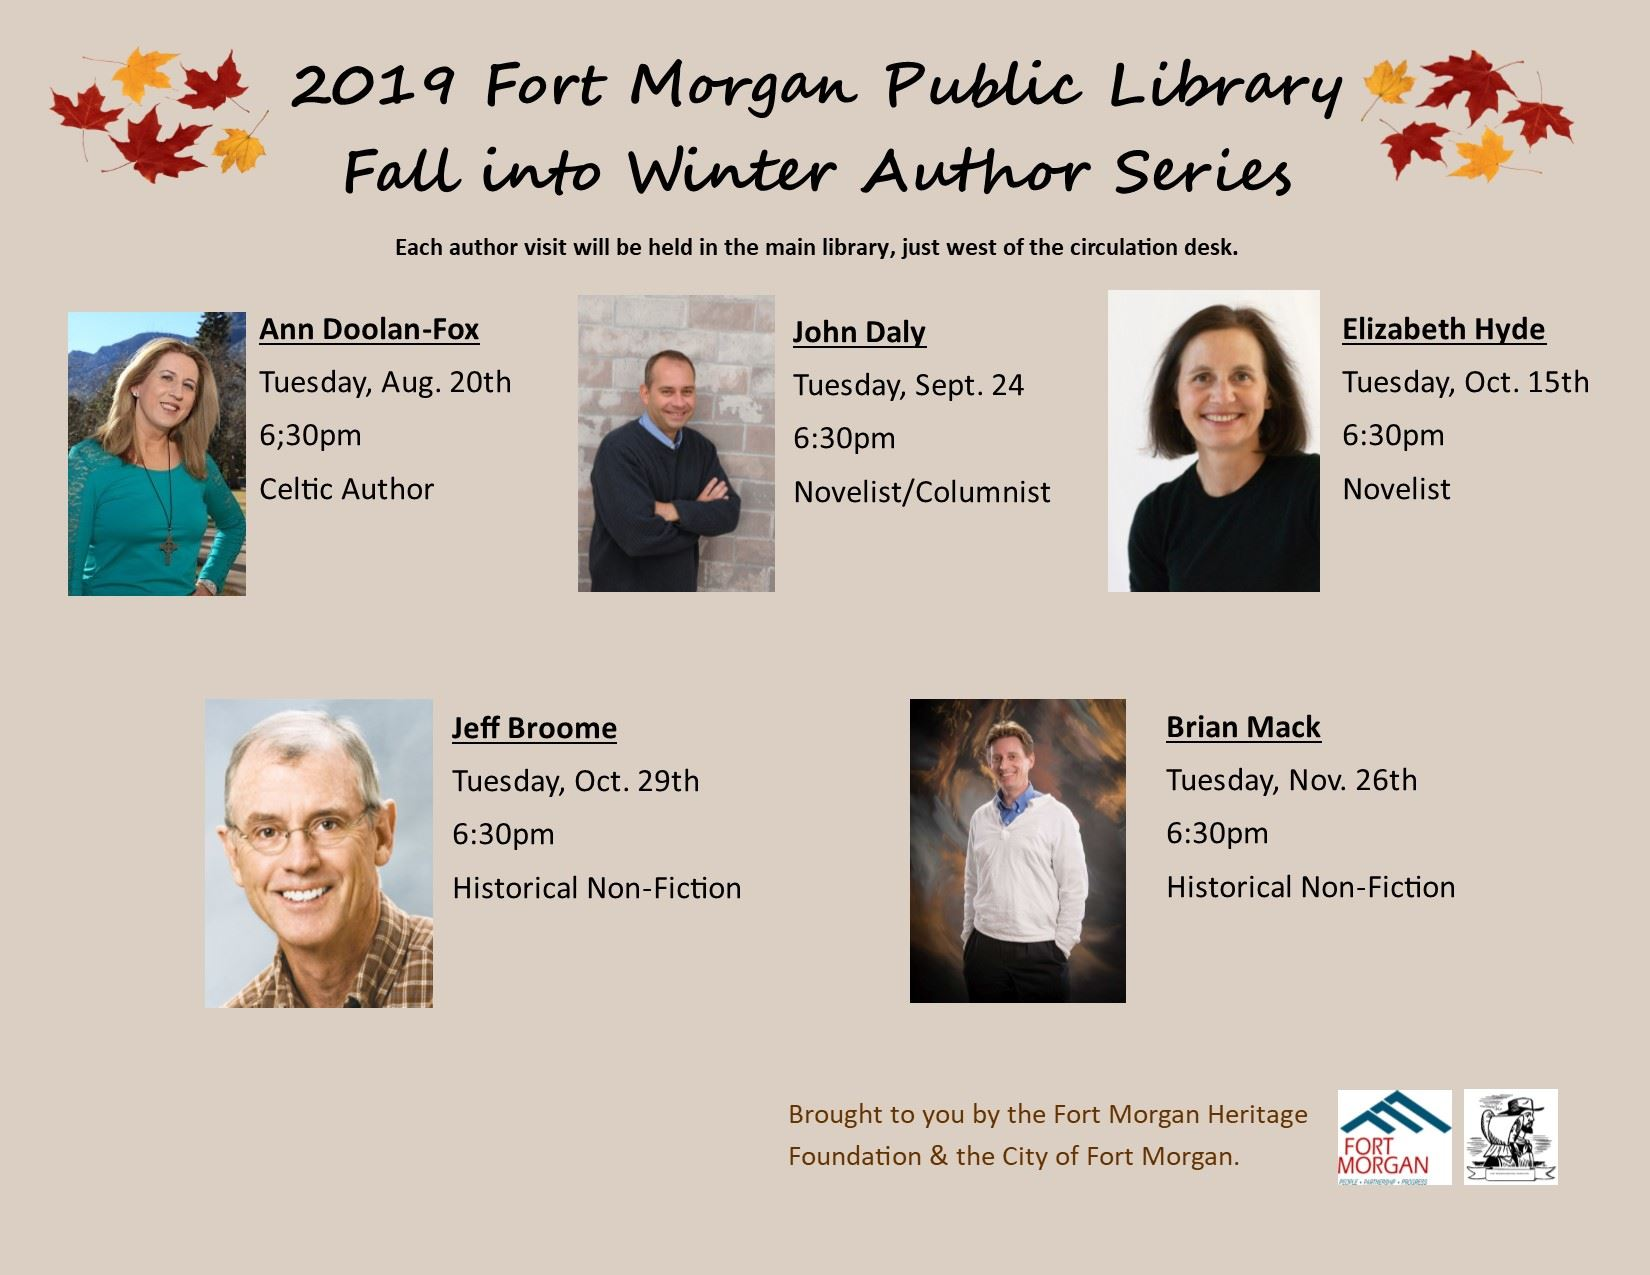 2019 Fall into Winter Author Series Flier